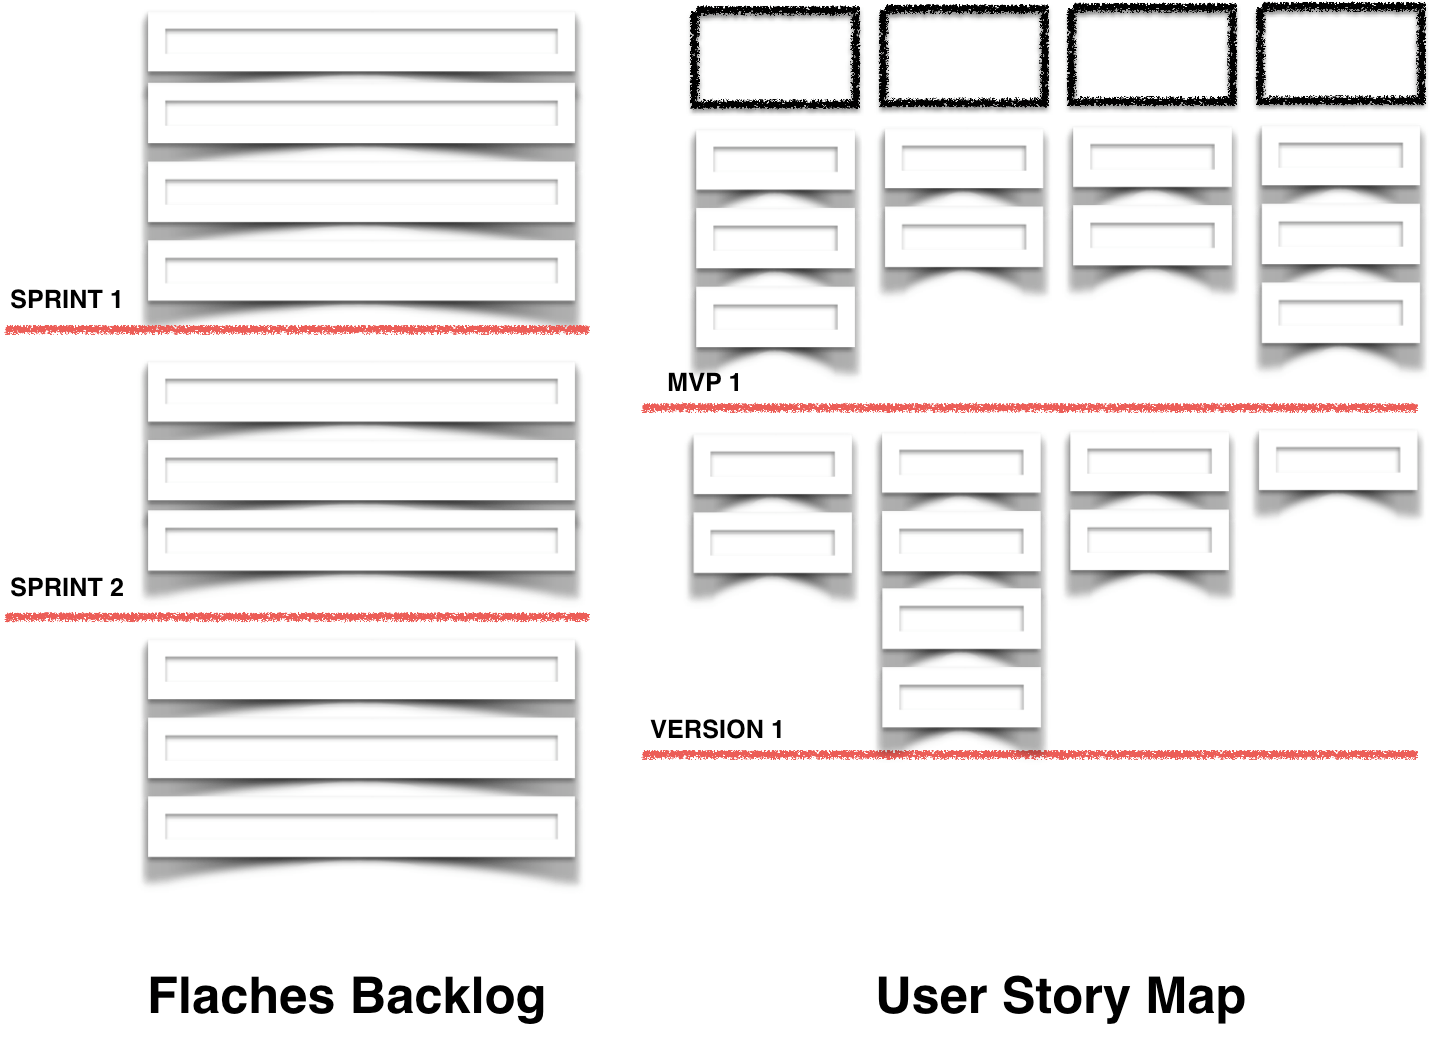 easy agile user story map for jira user guide books review. Black Bedroom Furniture Sets. Home Design Ideas